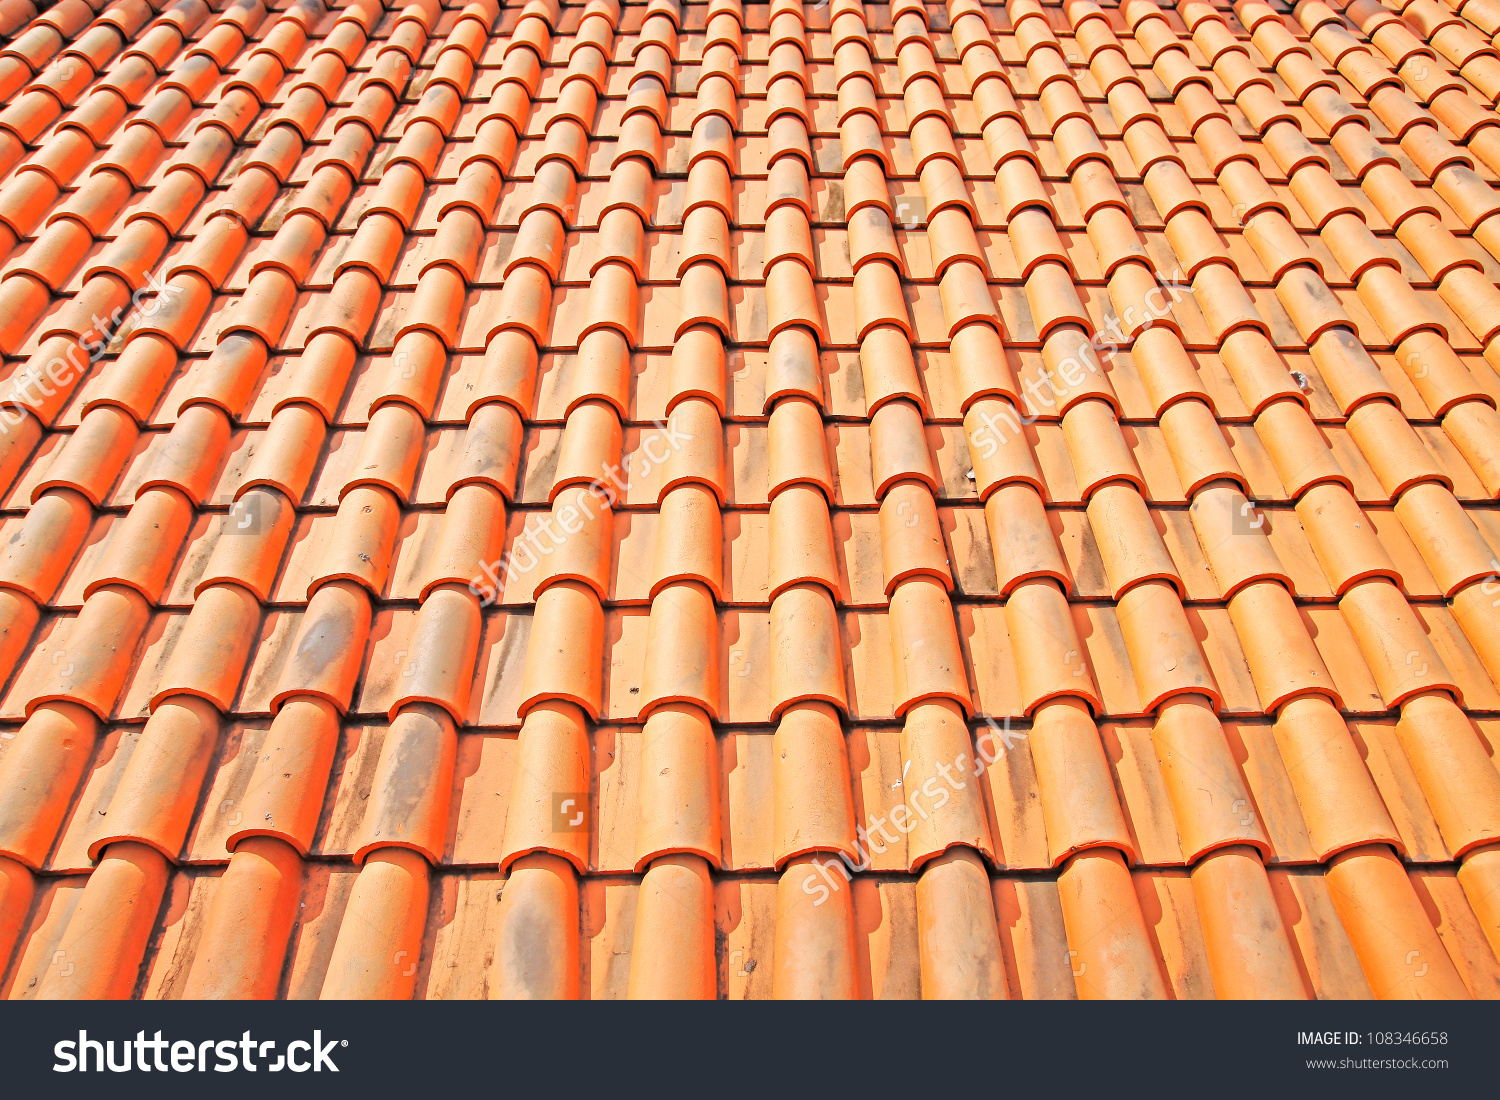 Tile Roof Detail Red Clay Tile Stock Photo 108346658.